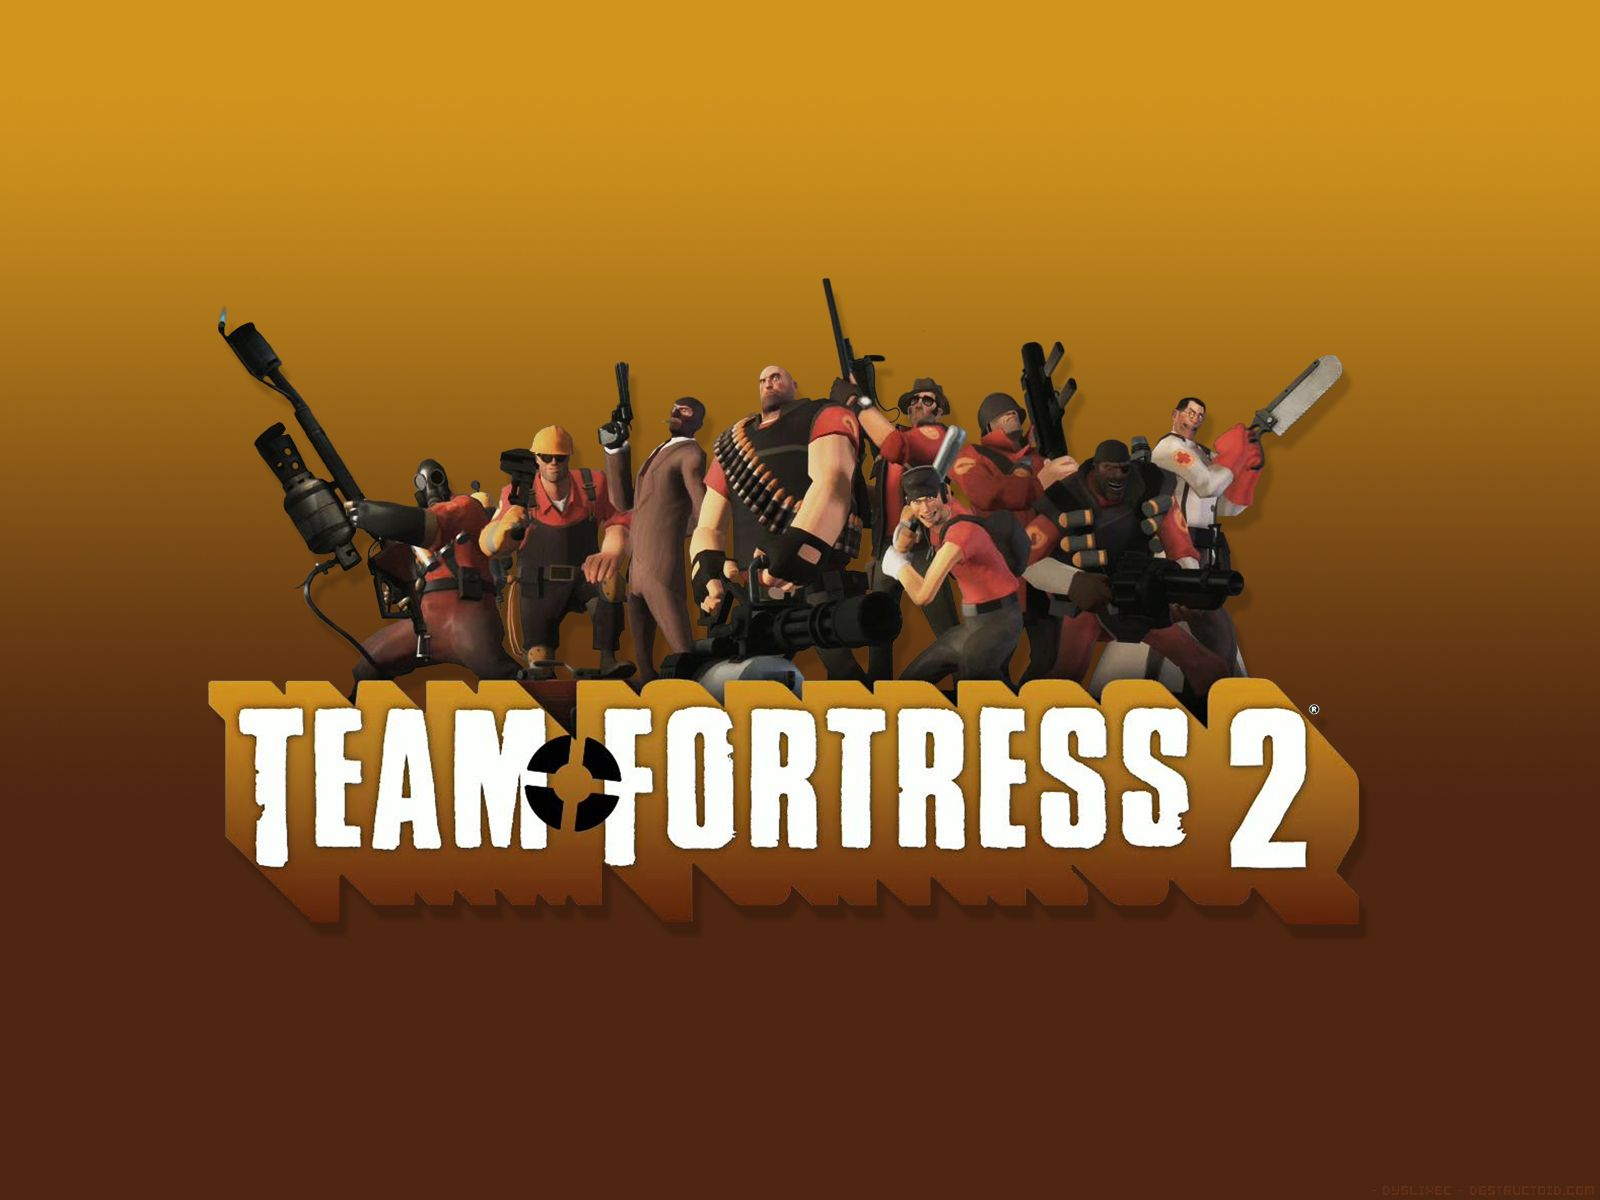 team fortress 2 logo wallpaper